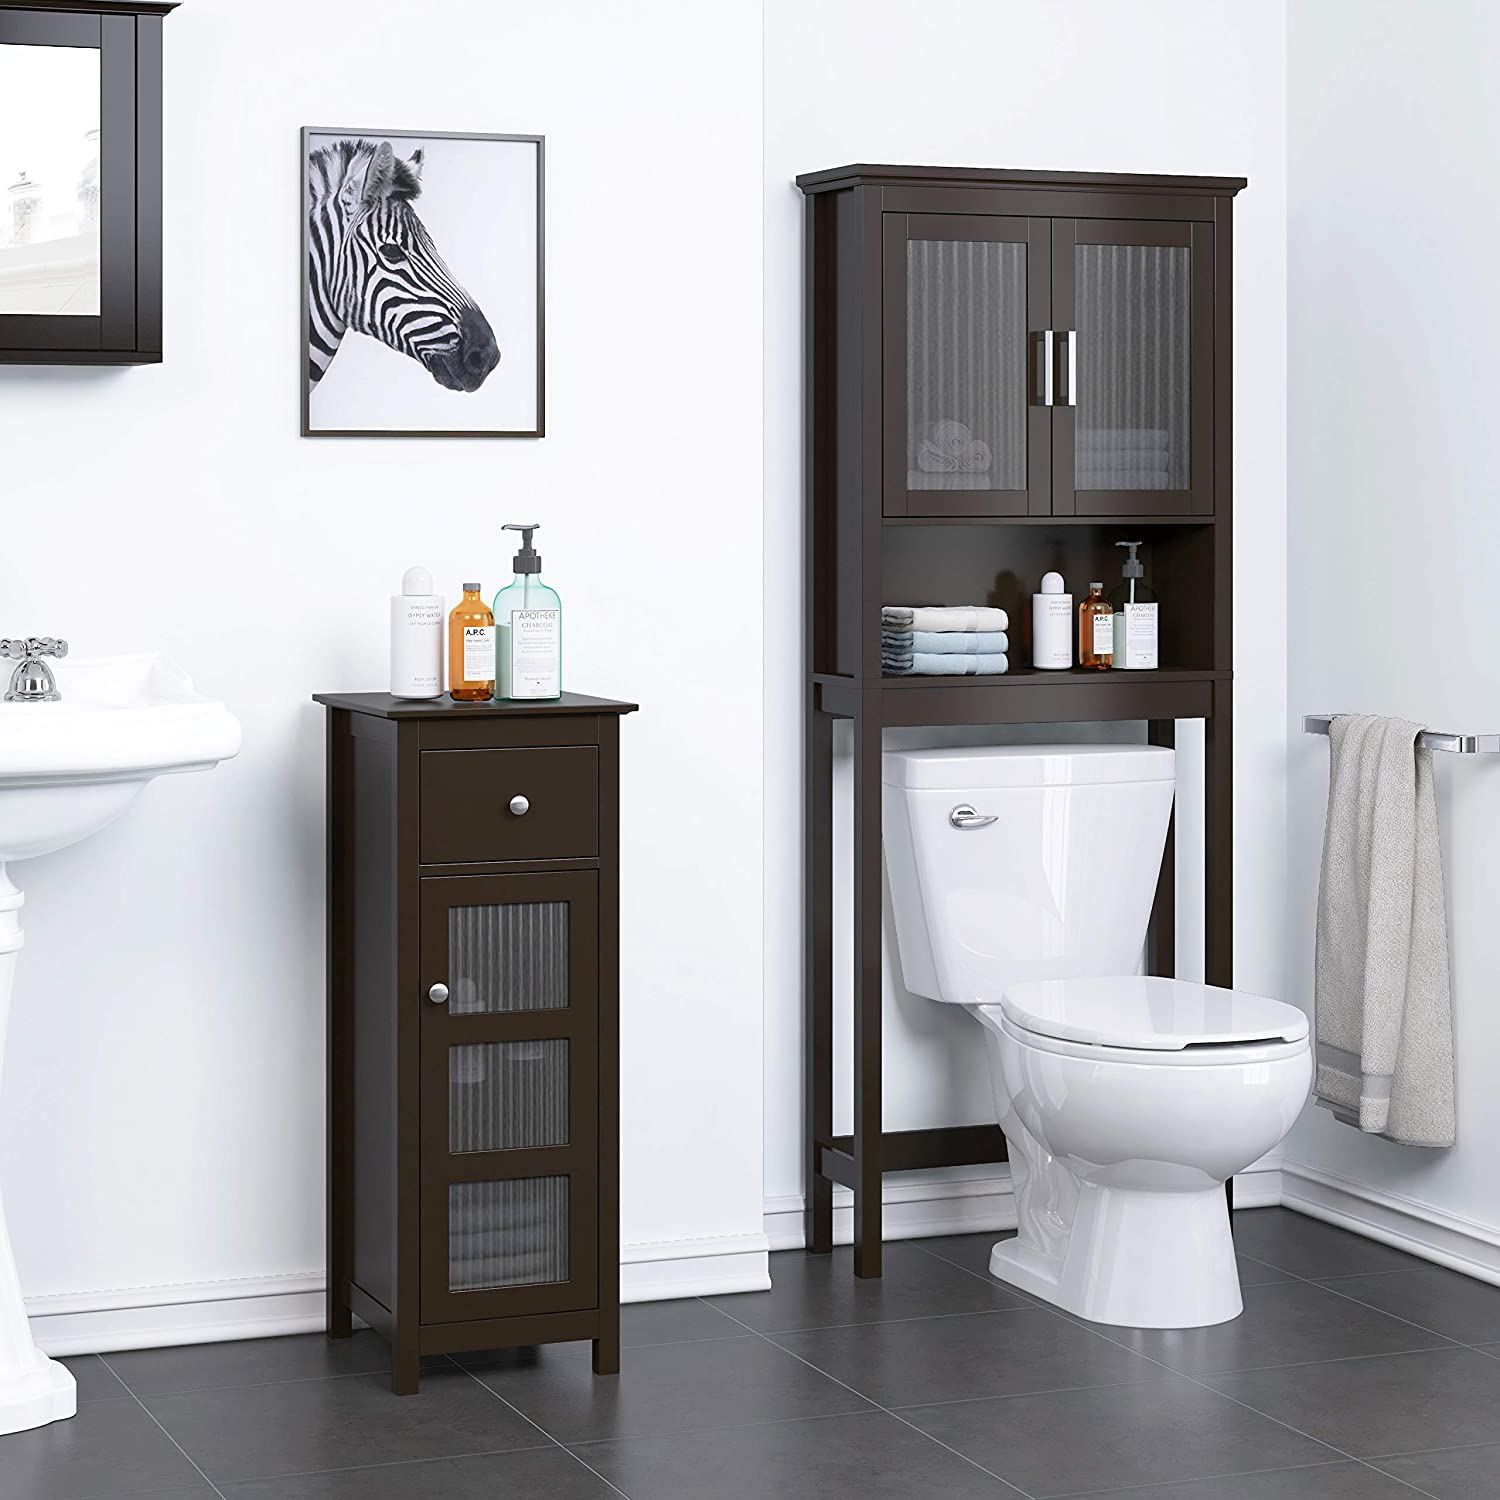 Siprich Home Bathroom Over-the-Toilet Bathroom Cabinet Organizer